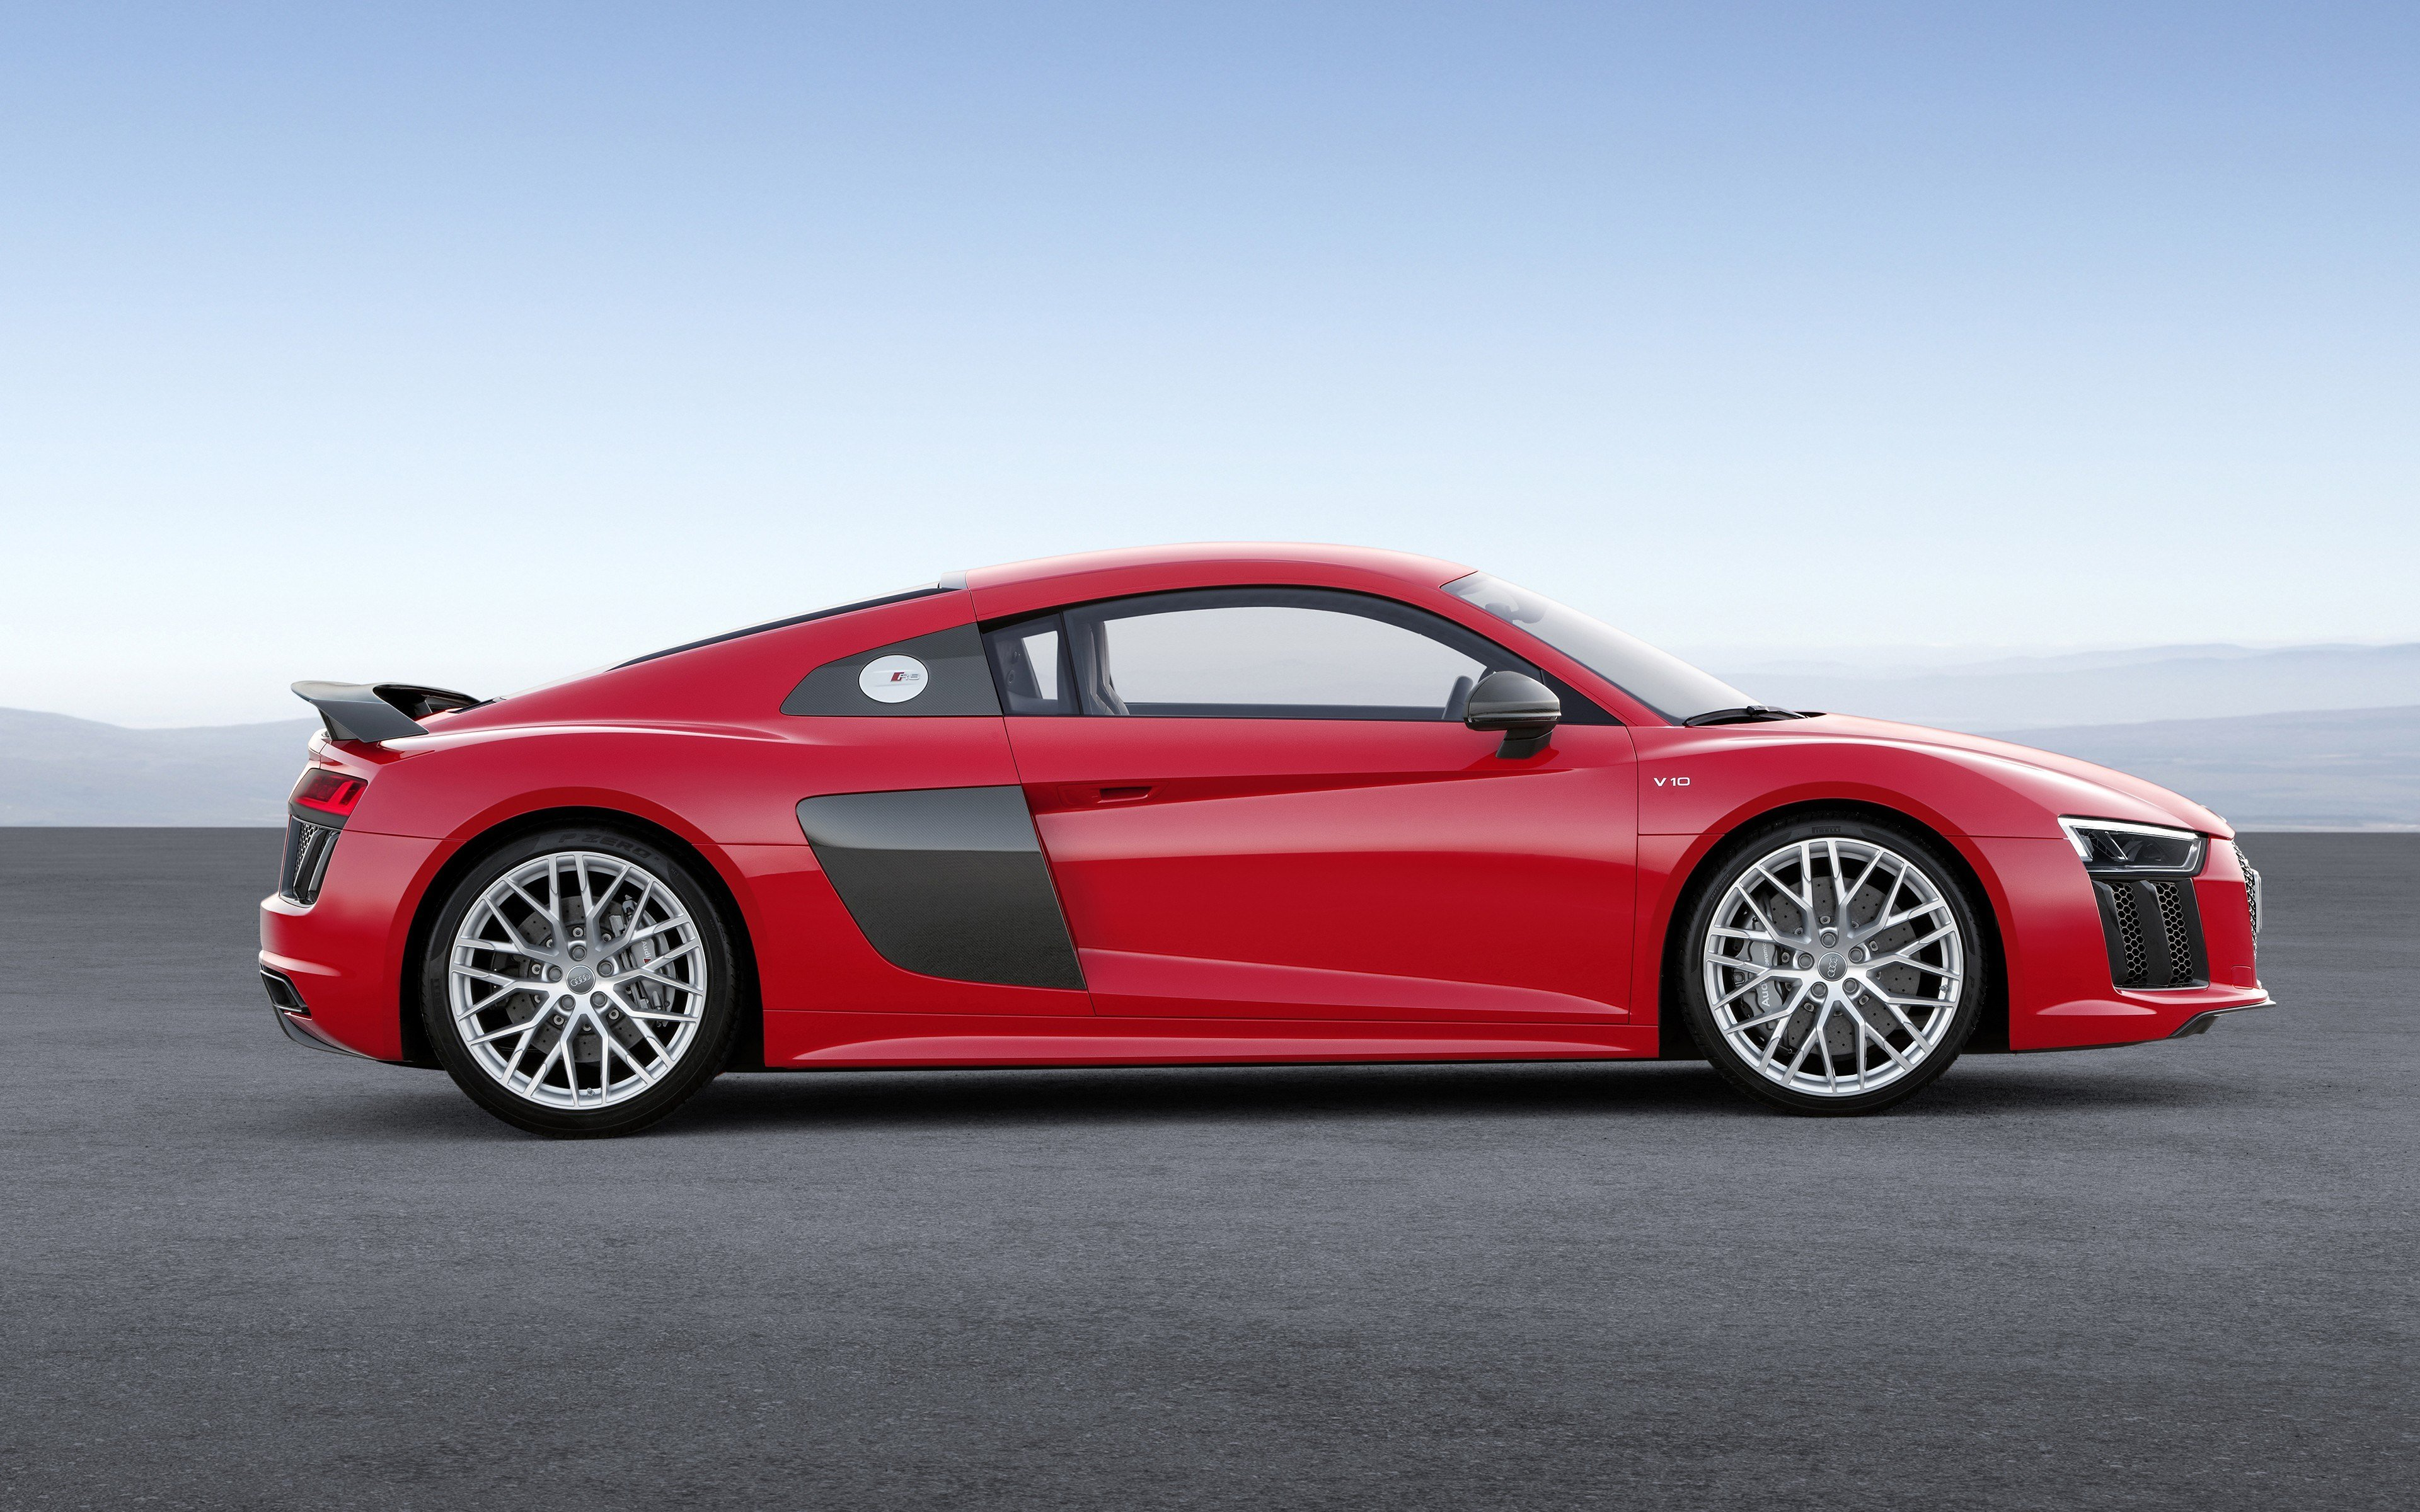 Latest Audi R8 Car Super Car Vehicle Red Cars Wallpapers Hd Free Download